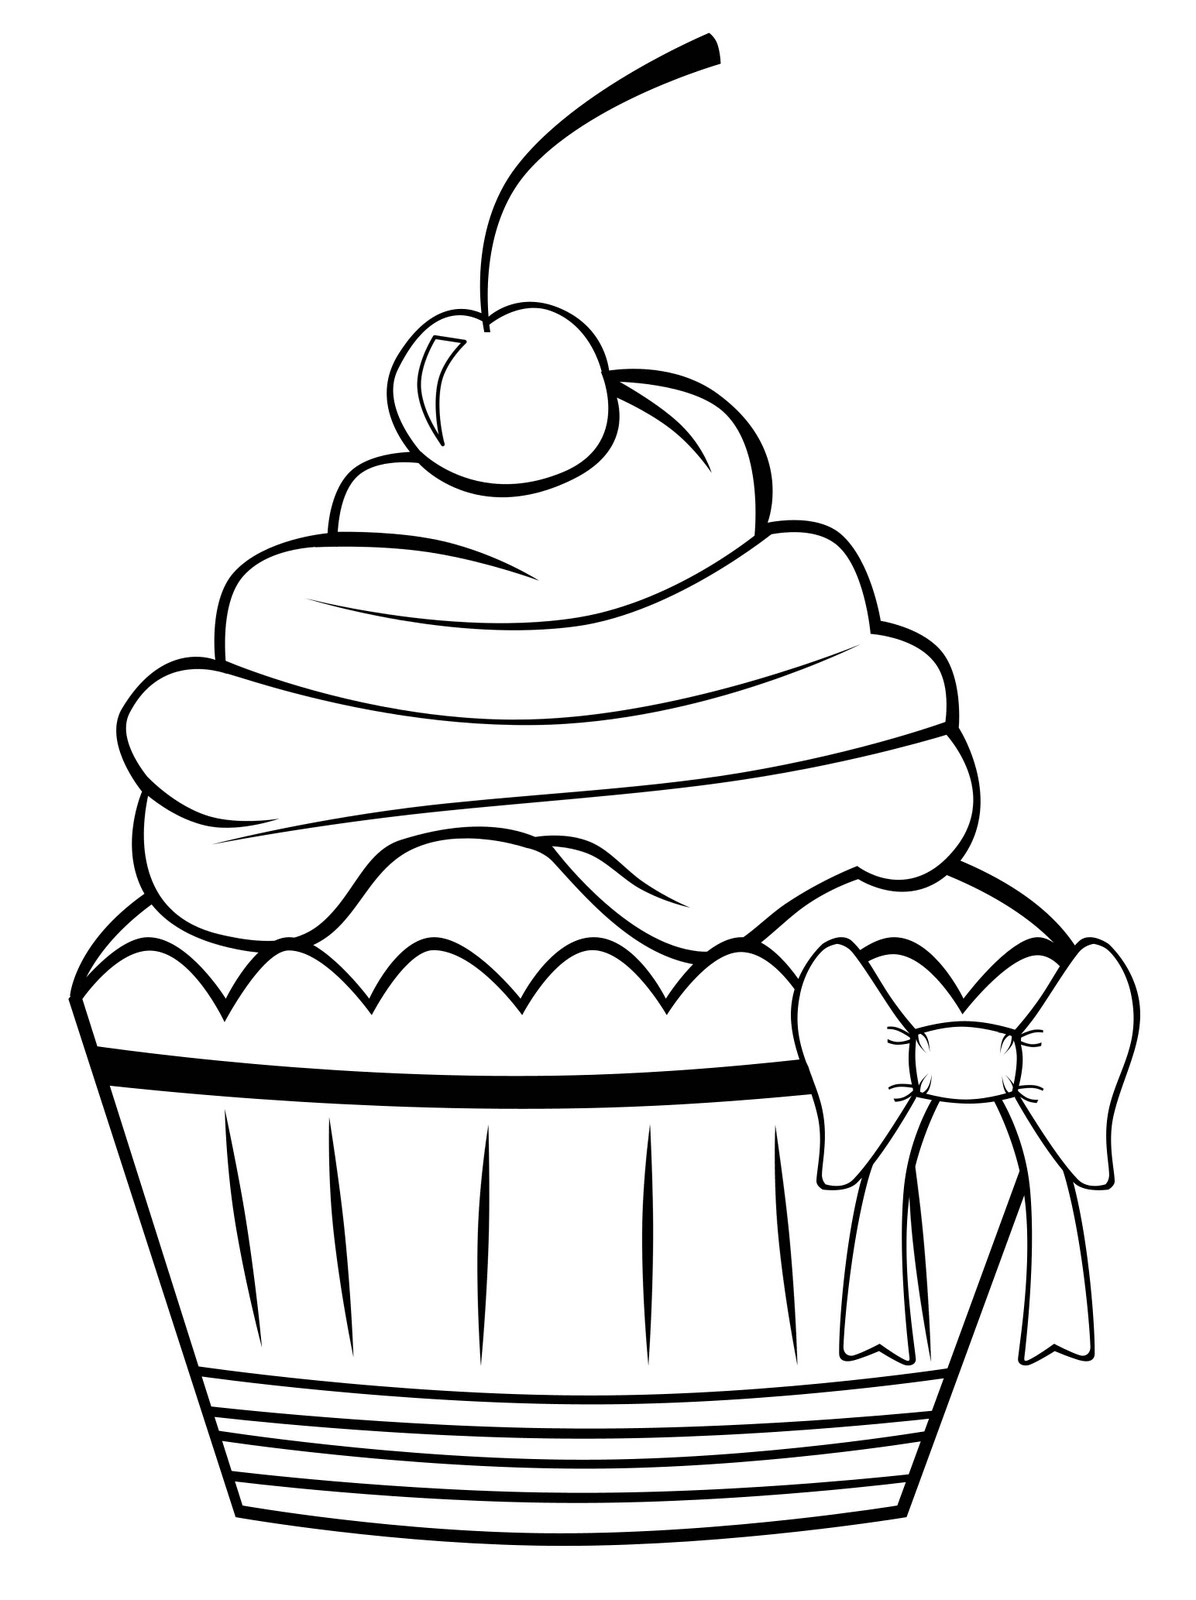 muffin pictures to color muffin coloring page ultra coloring pages muffin to color pictures